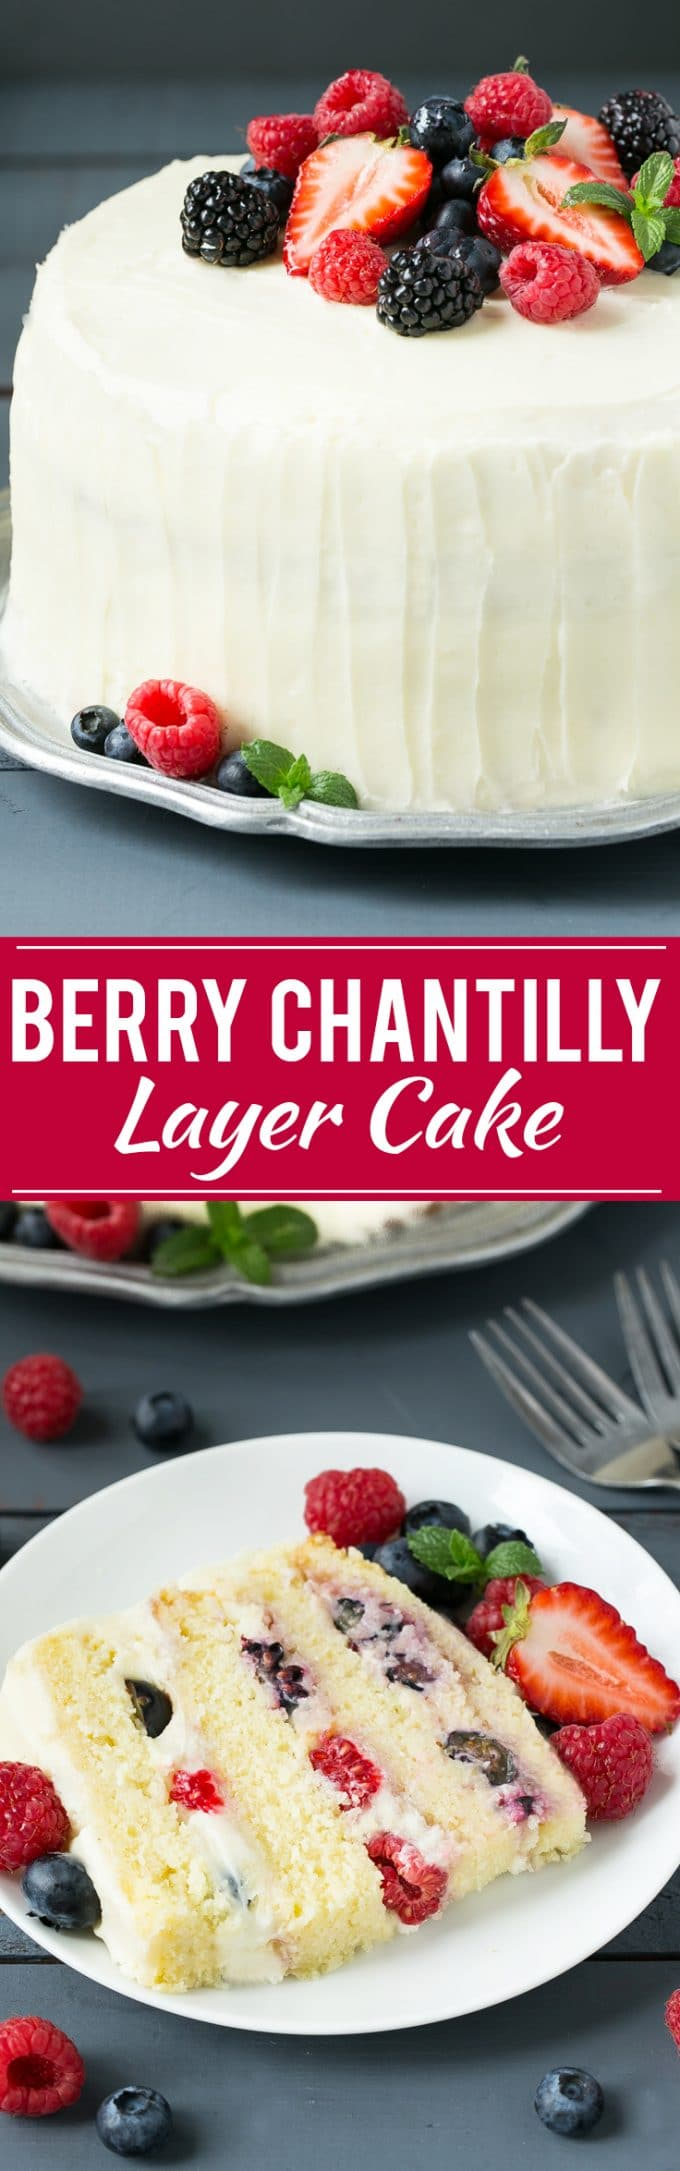 Berry Chantilly Cake Recipe | Chantilly Cake | Yellow Cake #cake #berries #dessert #dinneratthezoo